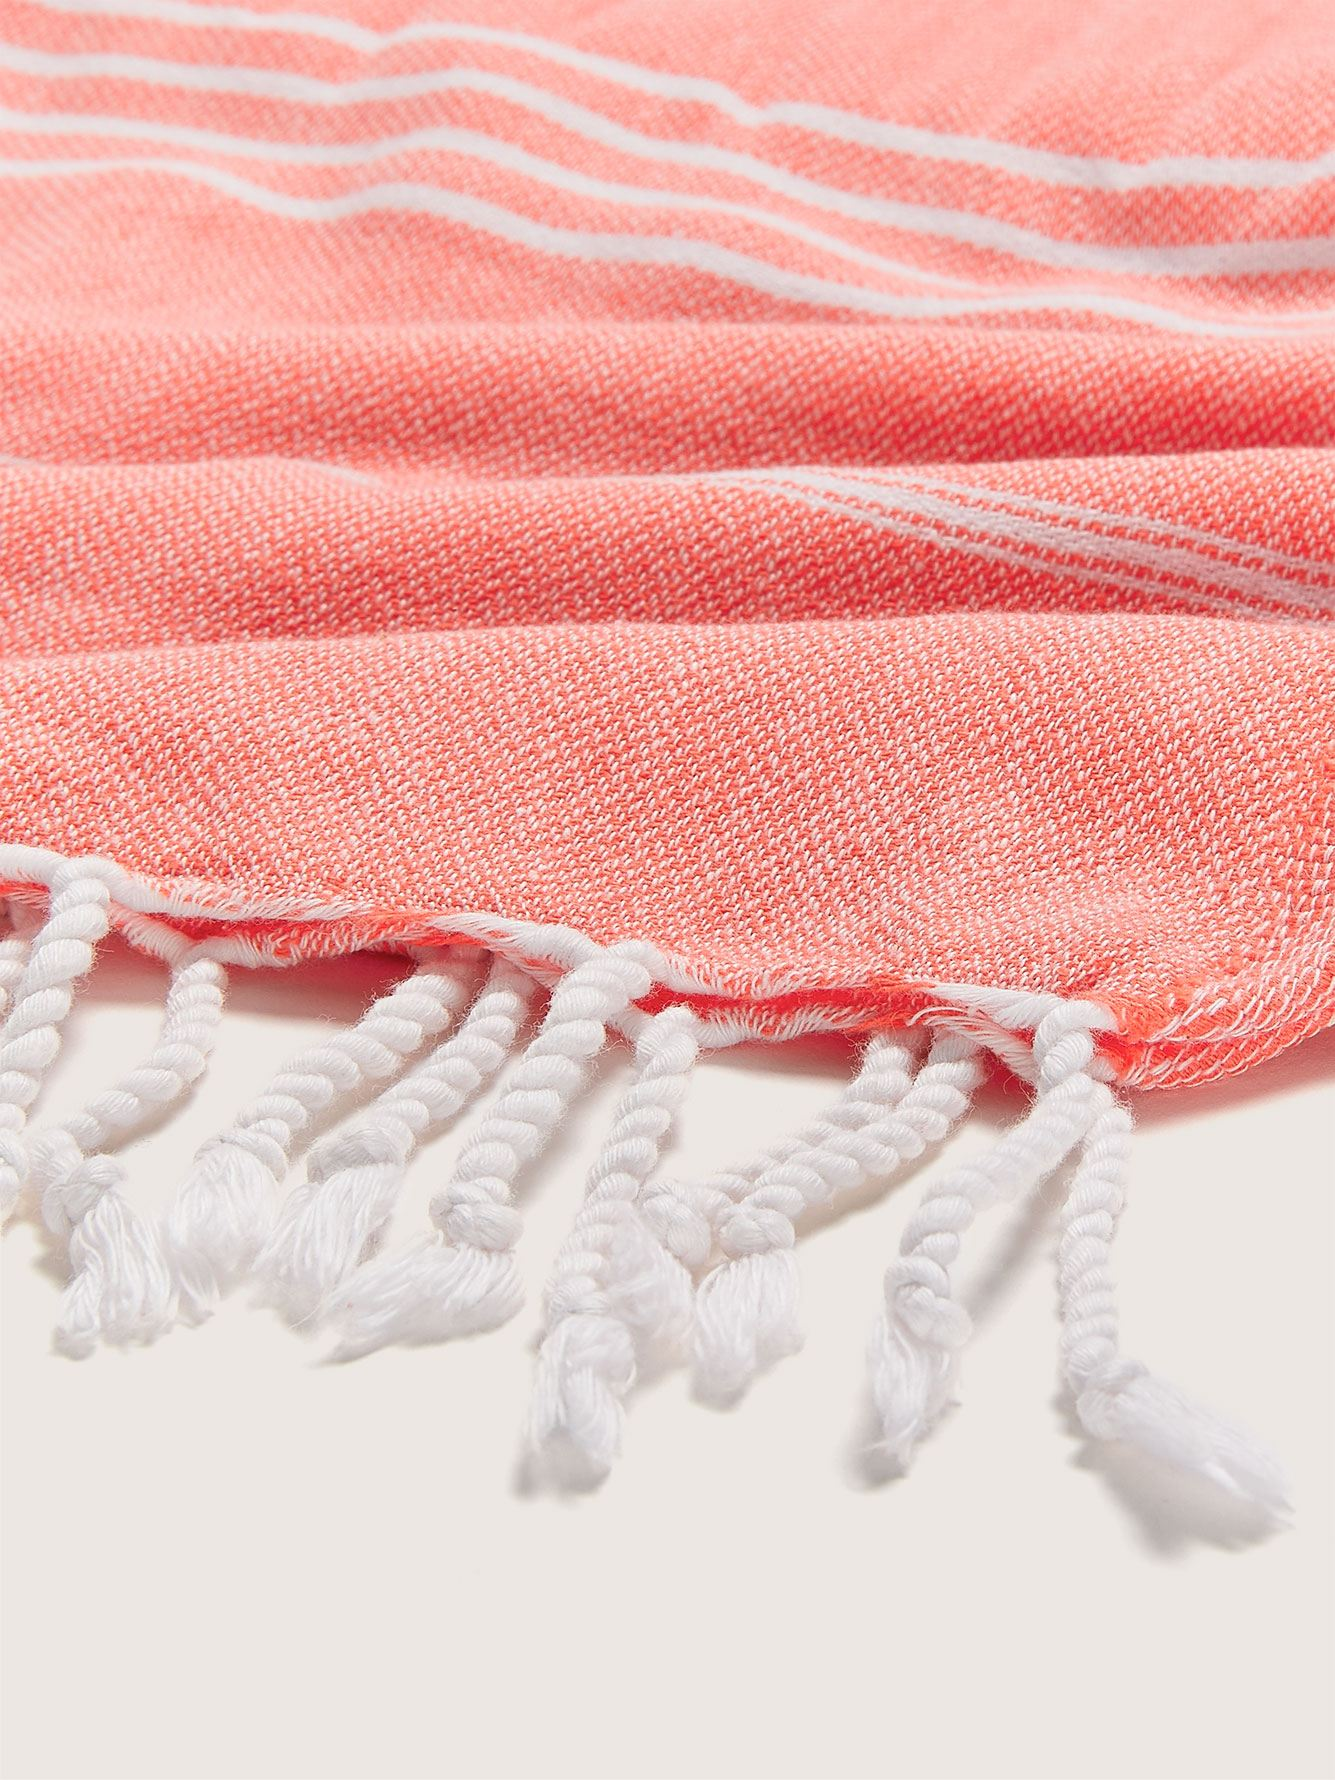 Turkish Cotton Beach Towel - Lualoha